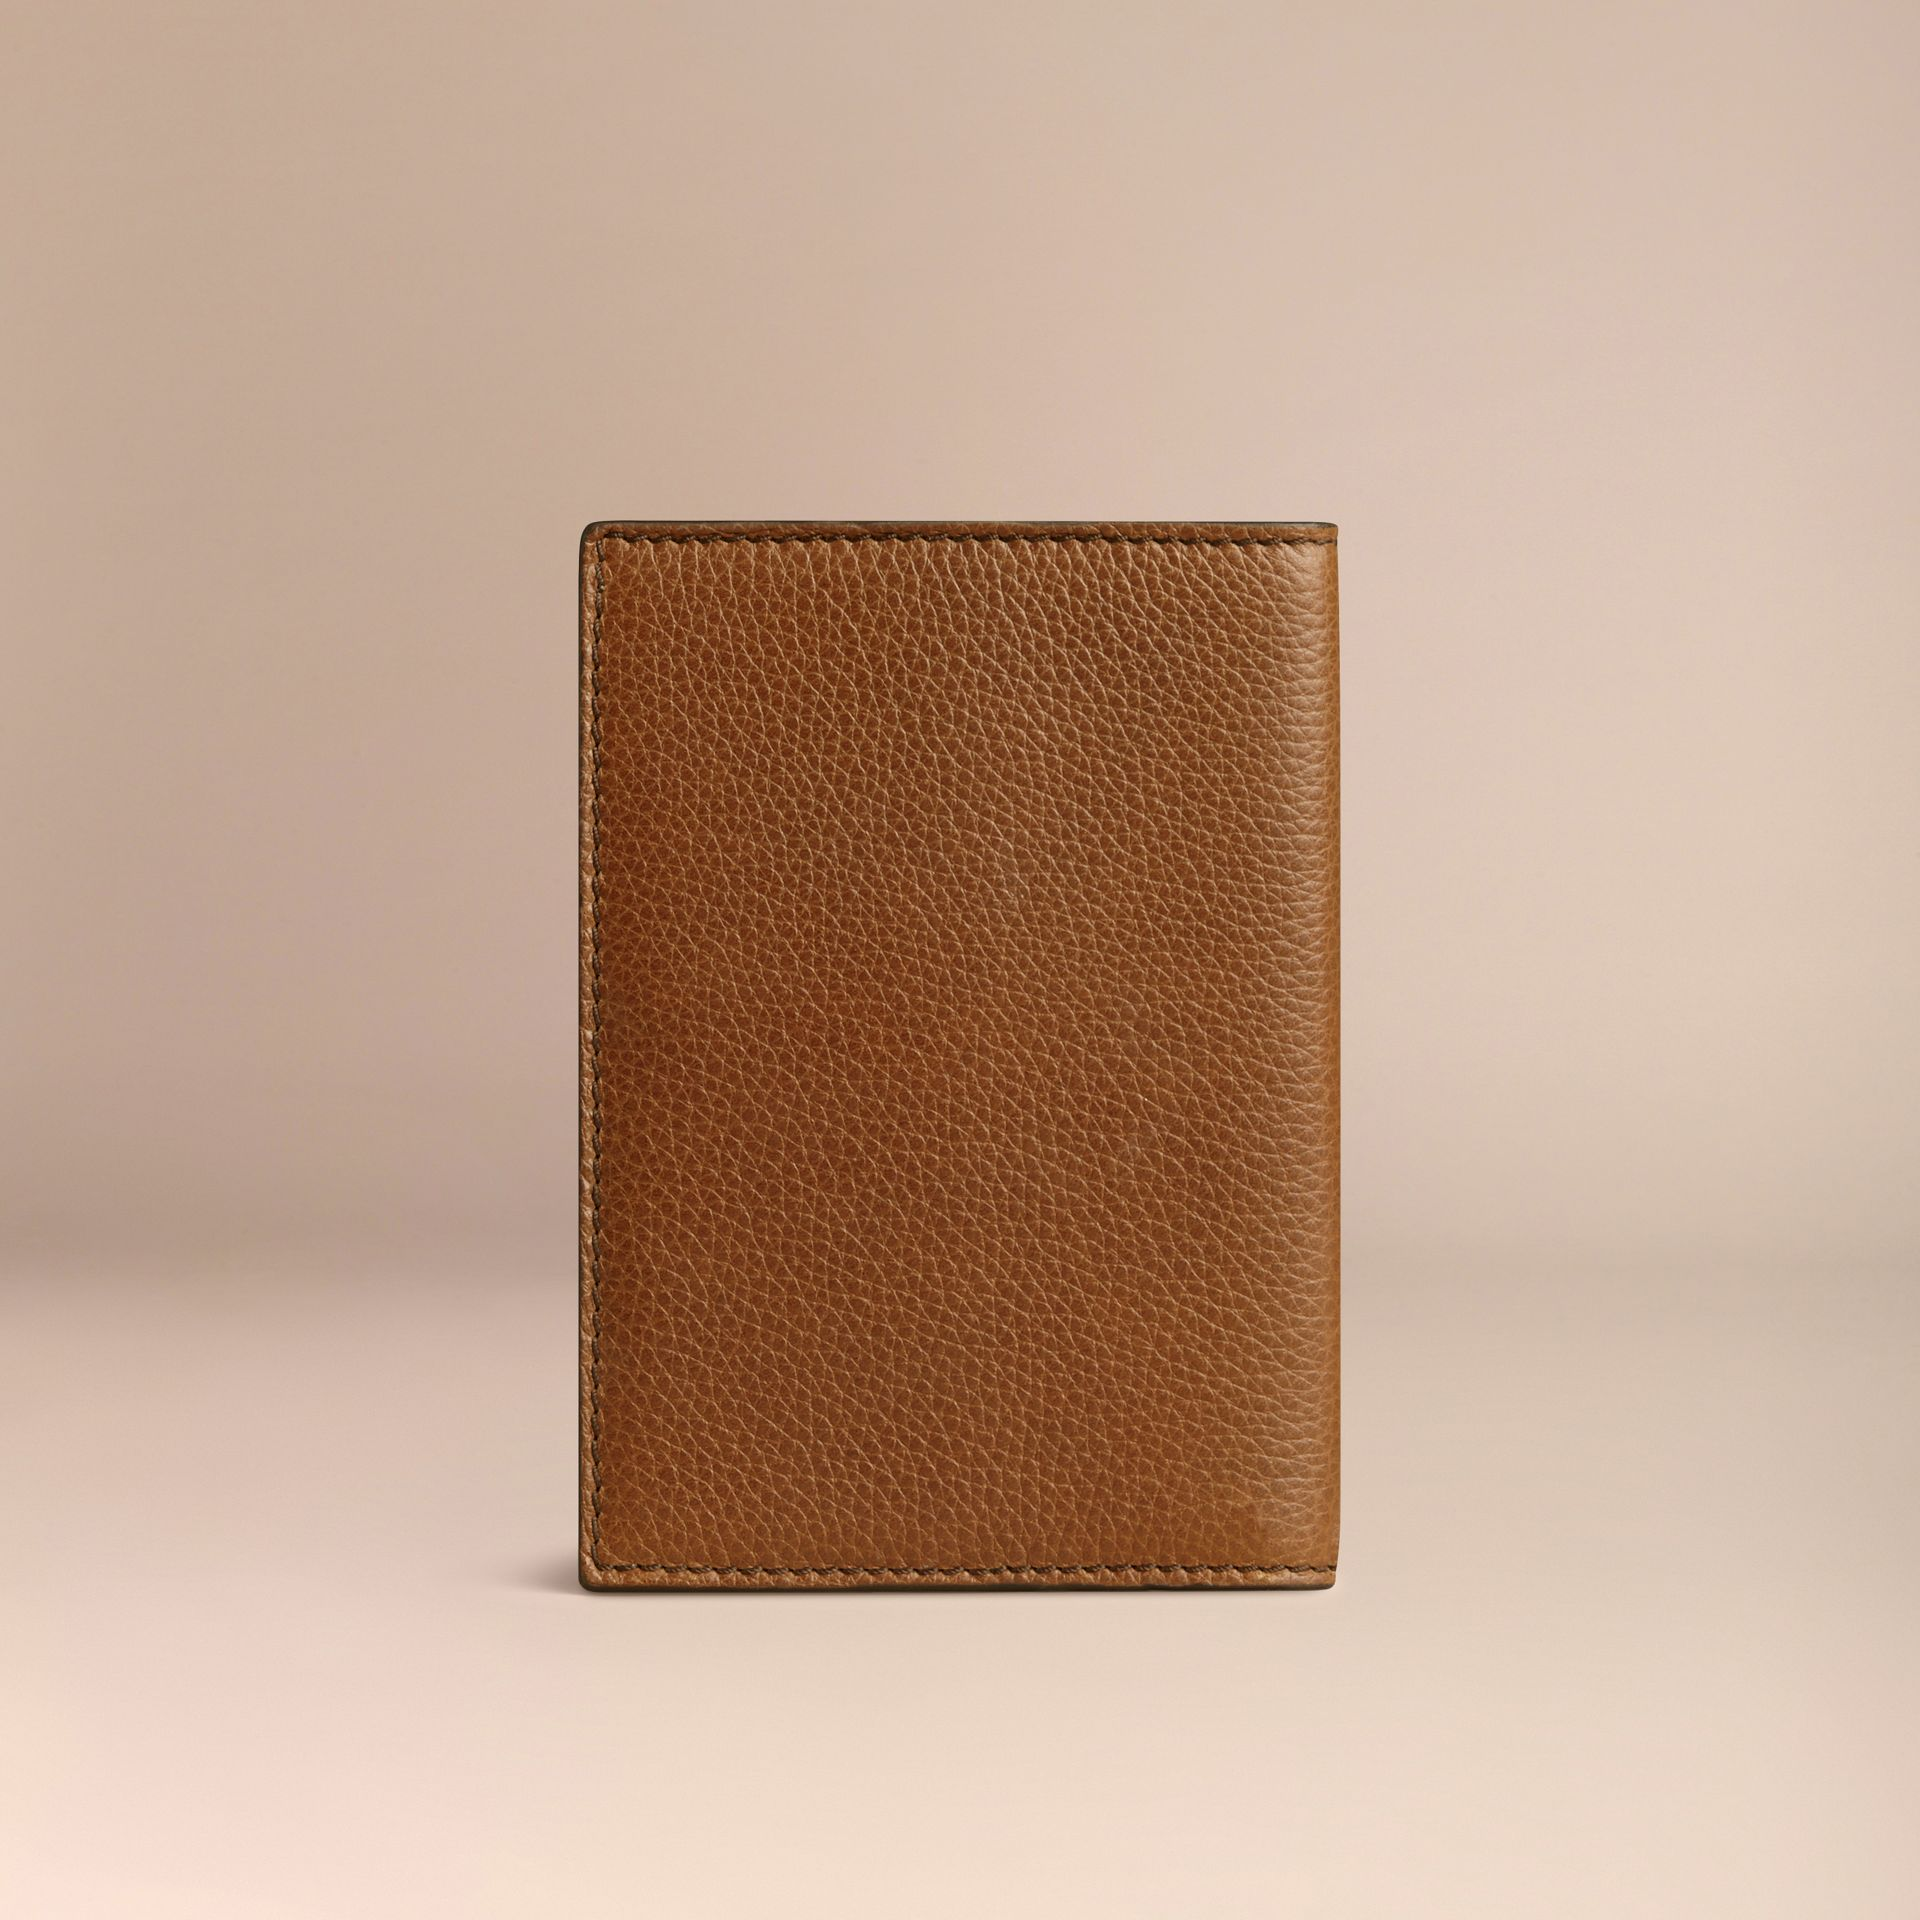 Grainy Leather Passport Cover in Tan | Burberry - gallery image 2